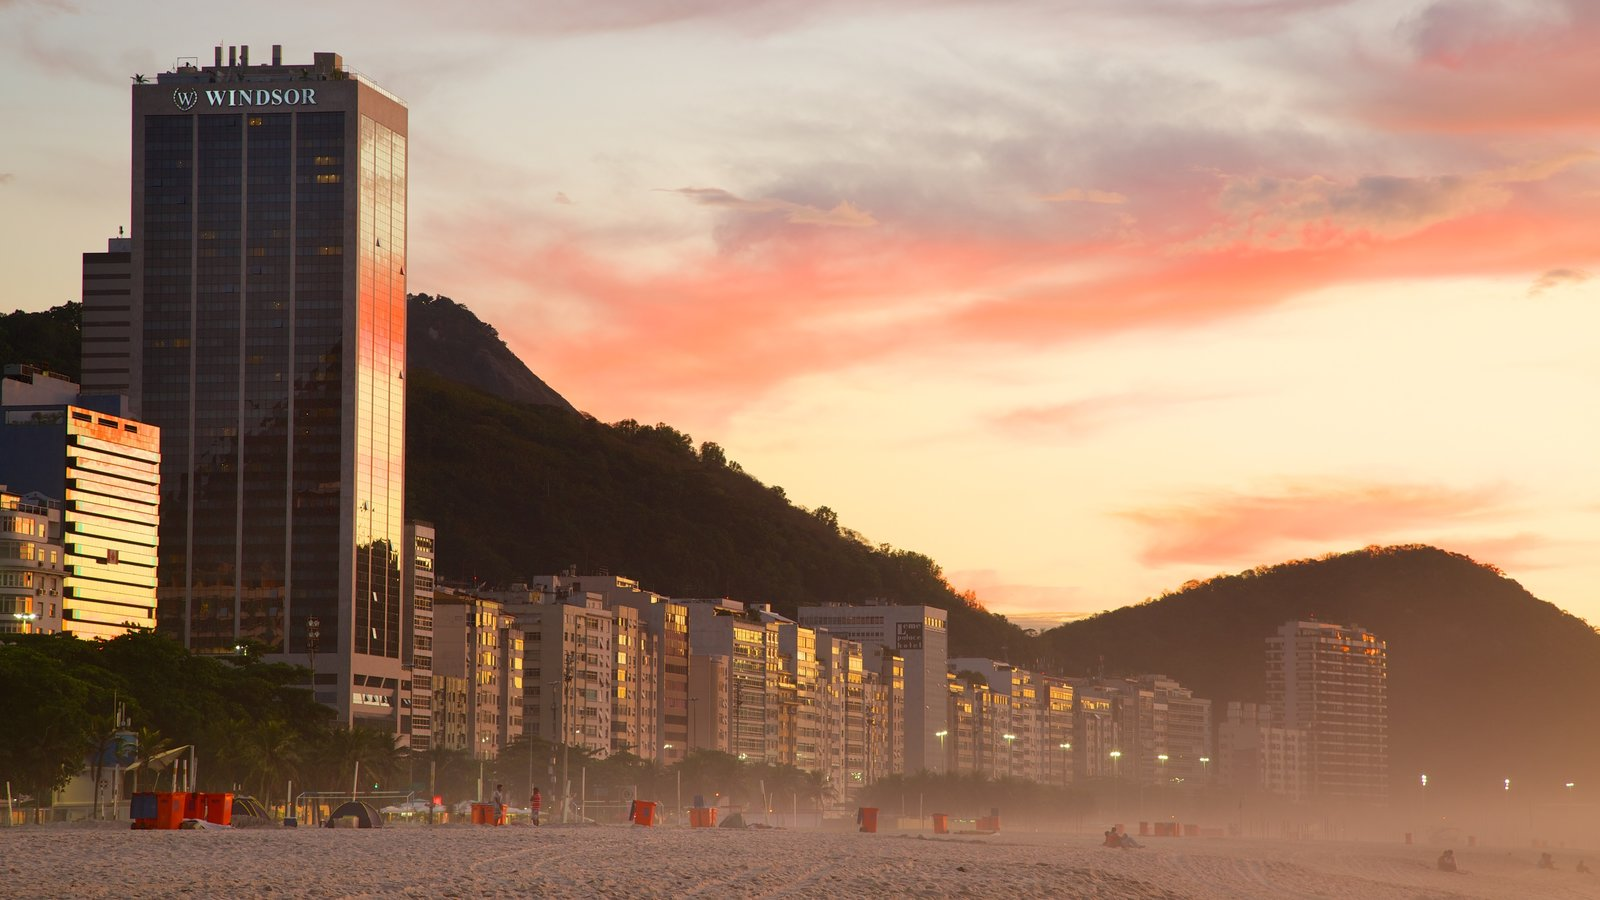 Copacabana Beach which includes a sunset, a beach and a hotel